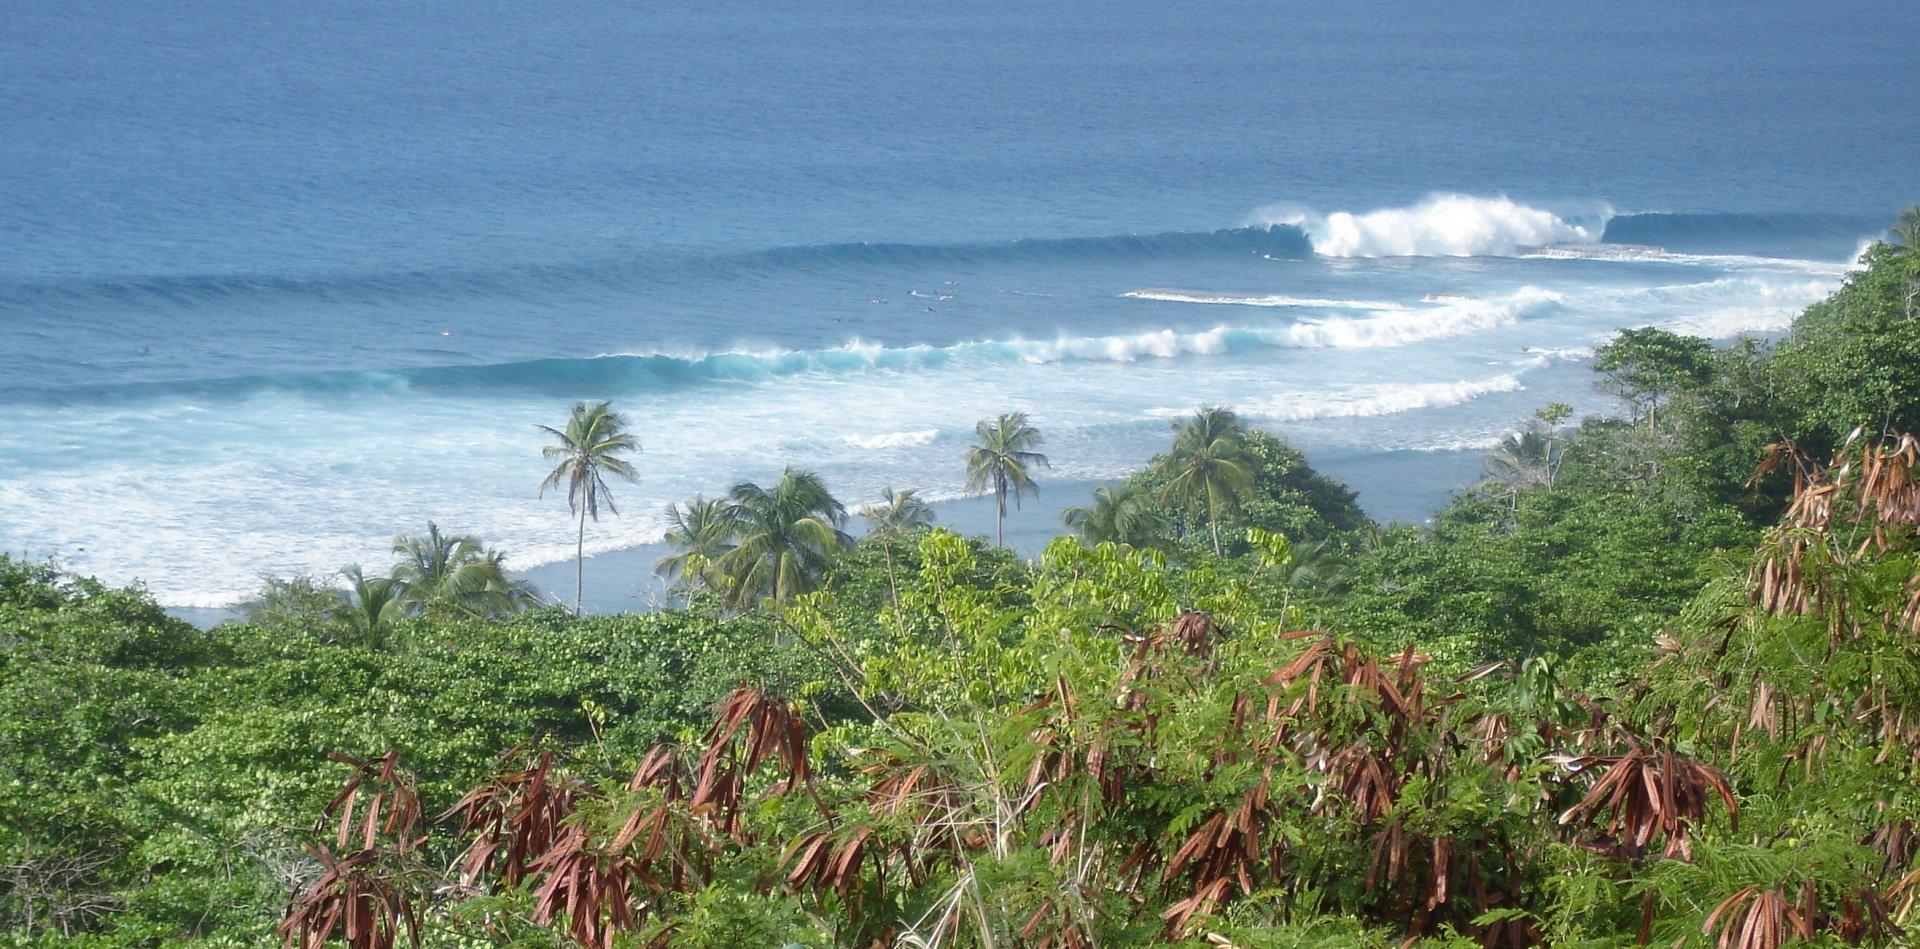 kurt's photo of Surfers Beach (Puerto Rico)